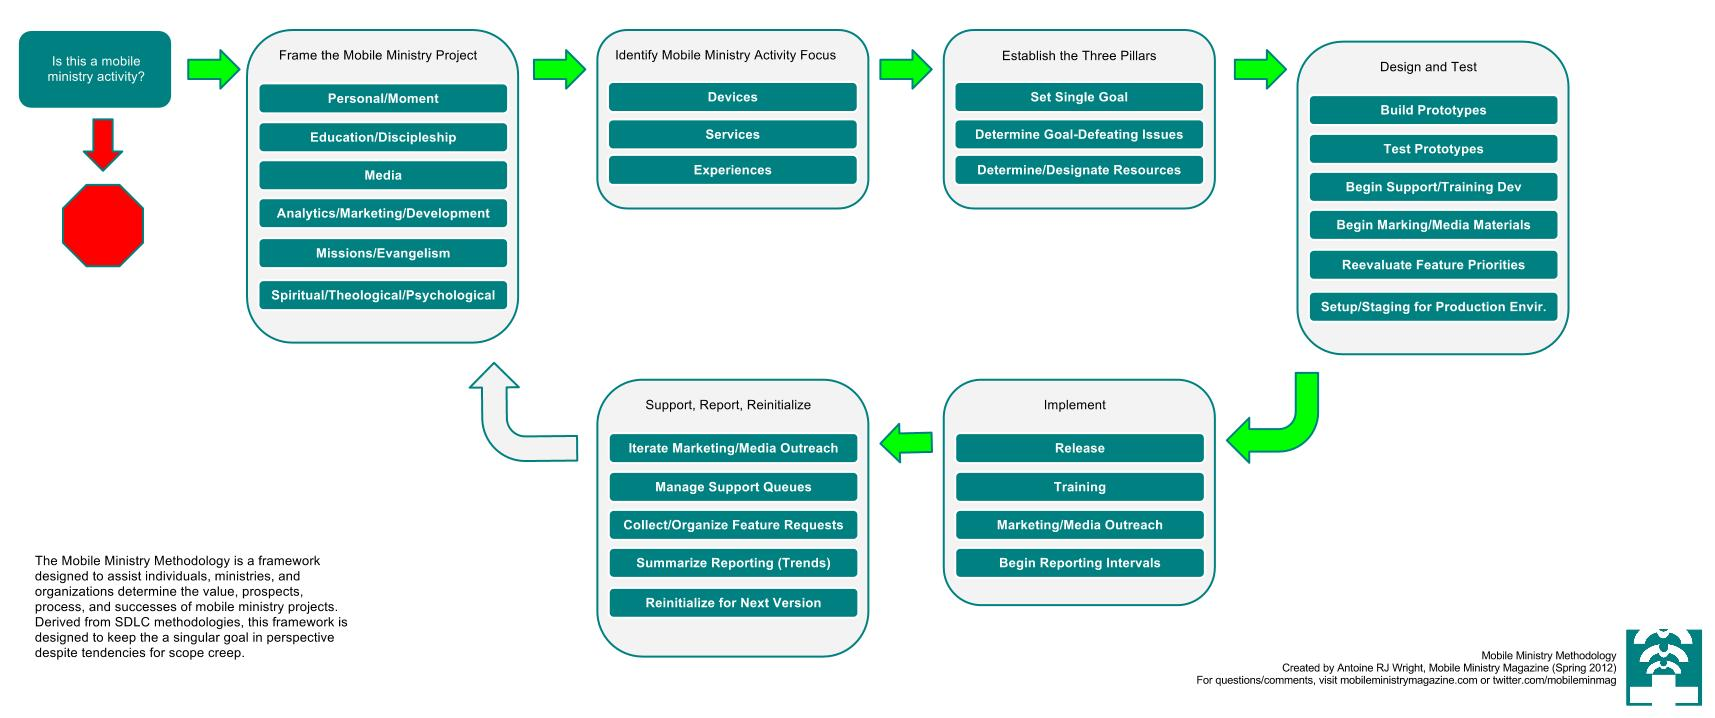 Mobile Ministry Methodology Process Map